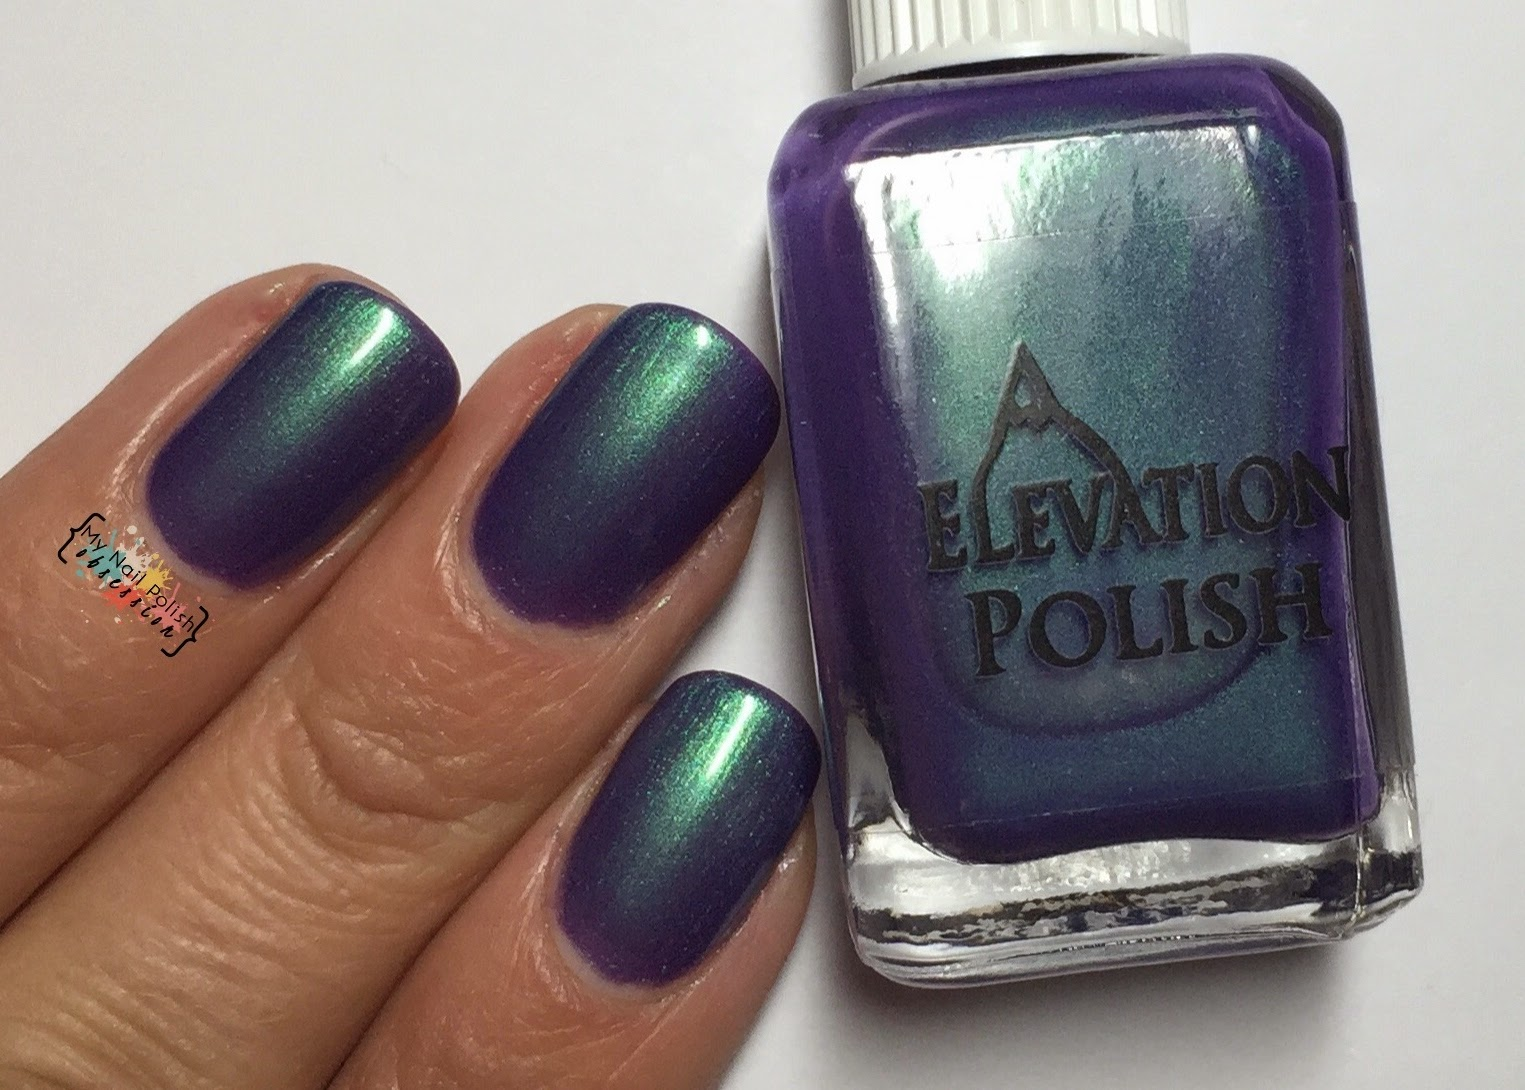 Elevation Polish Pic de Subenuix